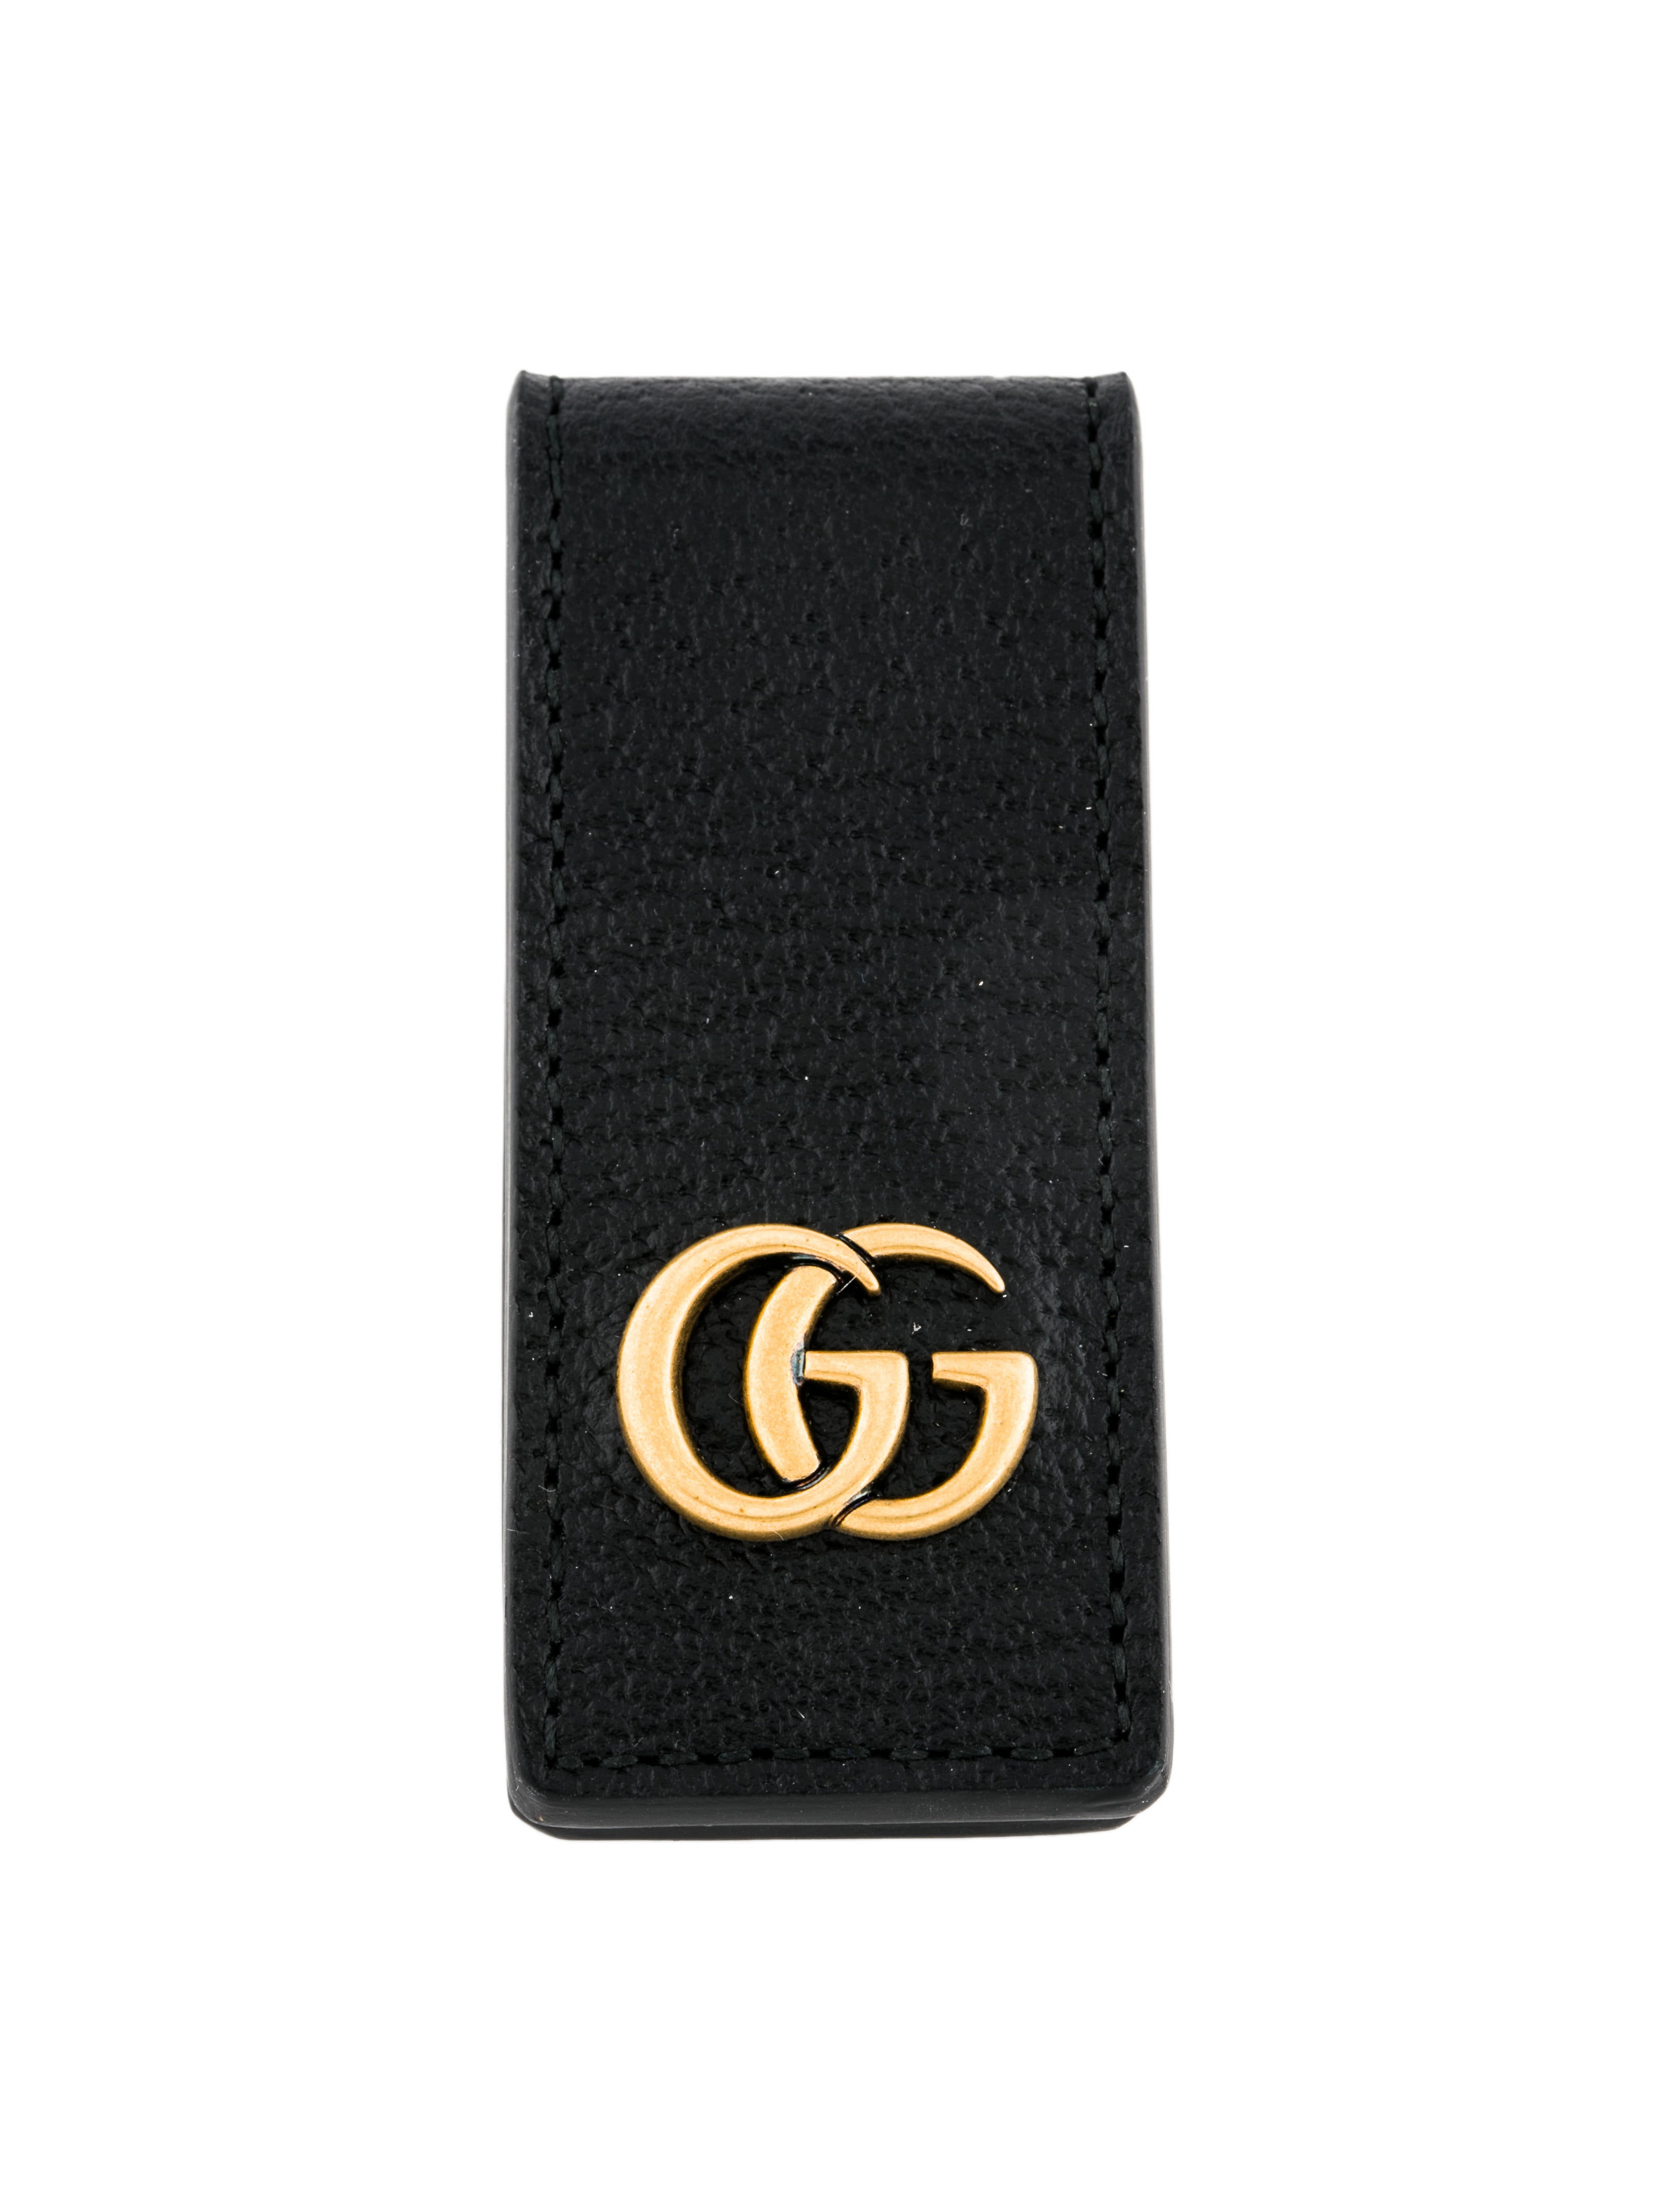 9943ac93f Gucci 2018 GG Marmont Leather Money Clip w/ Tags - Accessories ...